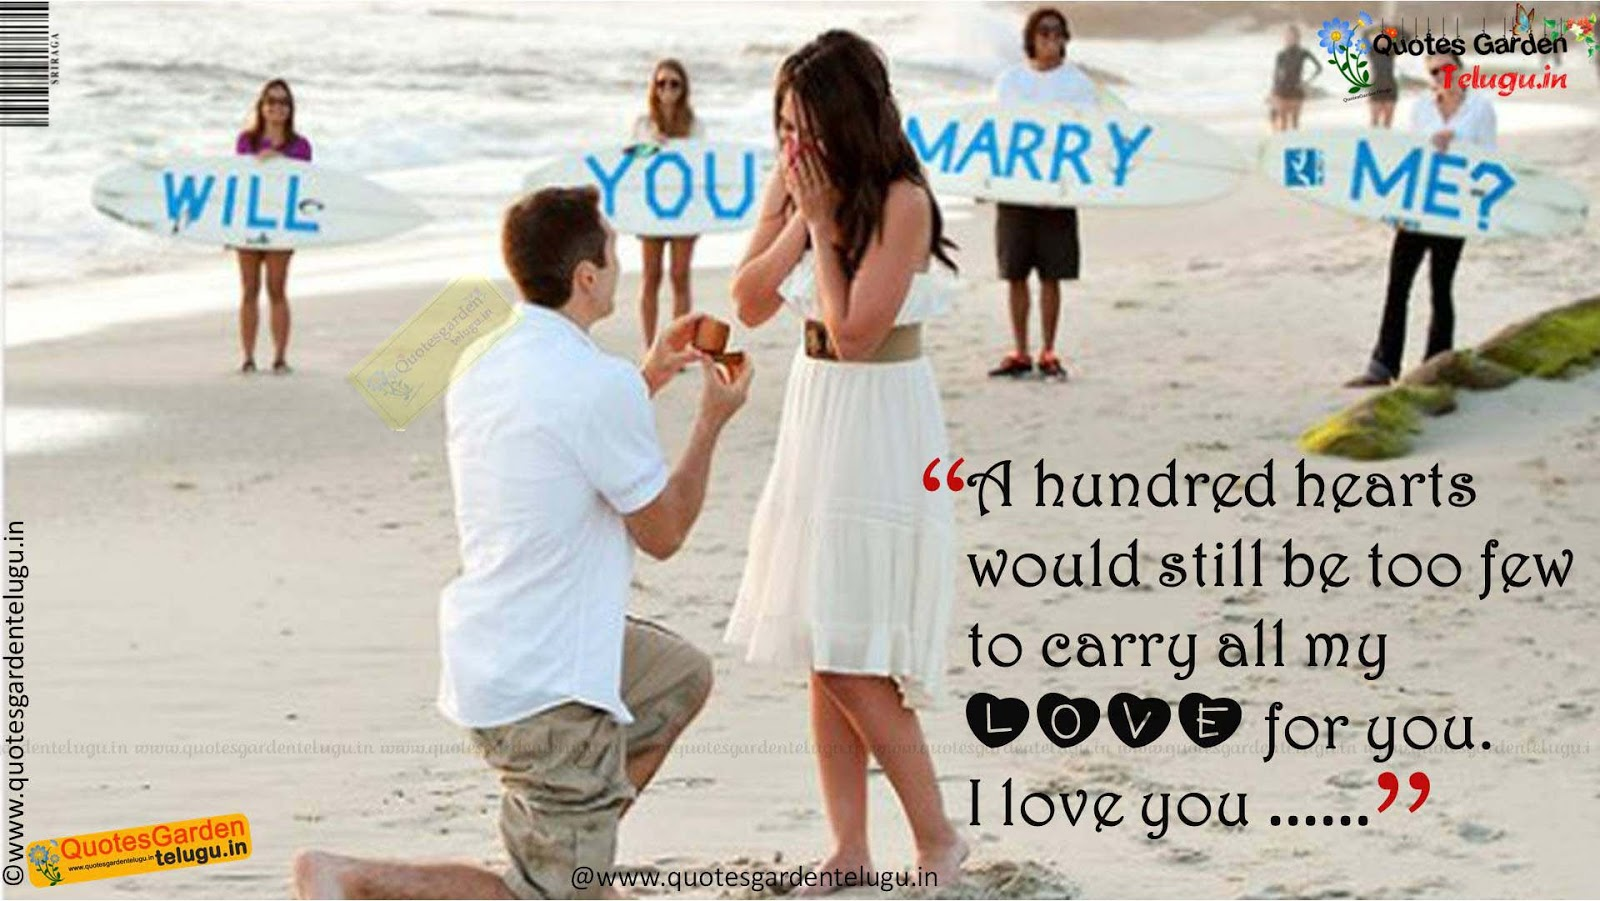 Best Love Proposals 942 QUOTES GARDEN TELUGU Telugu